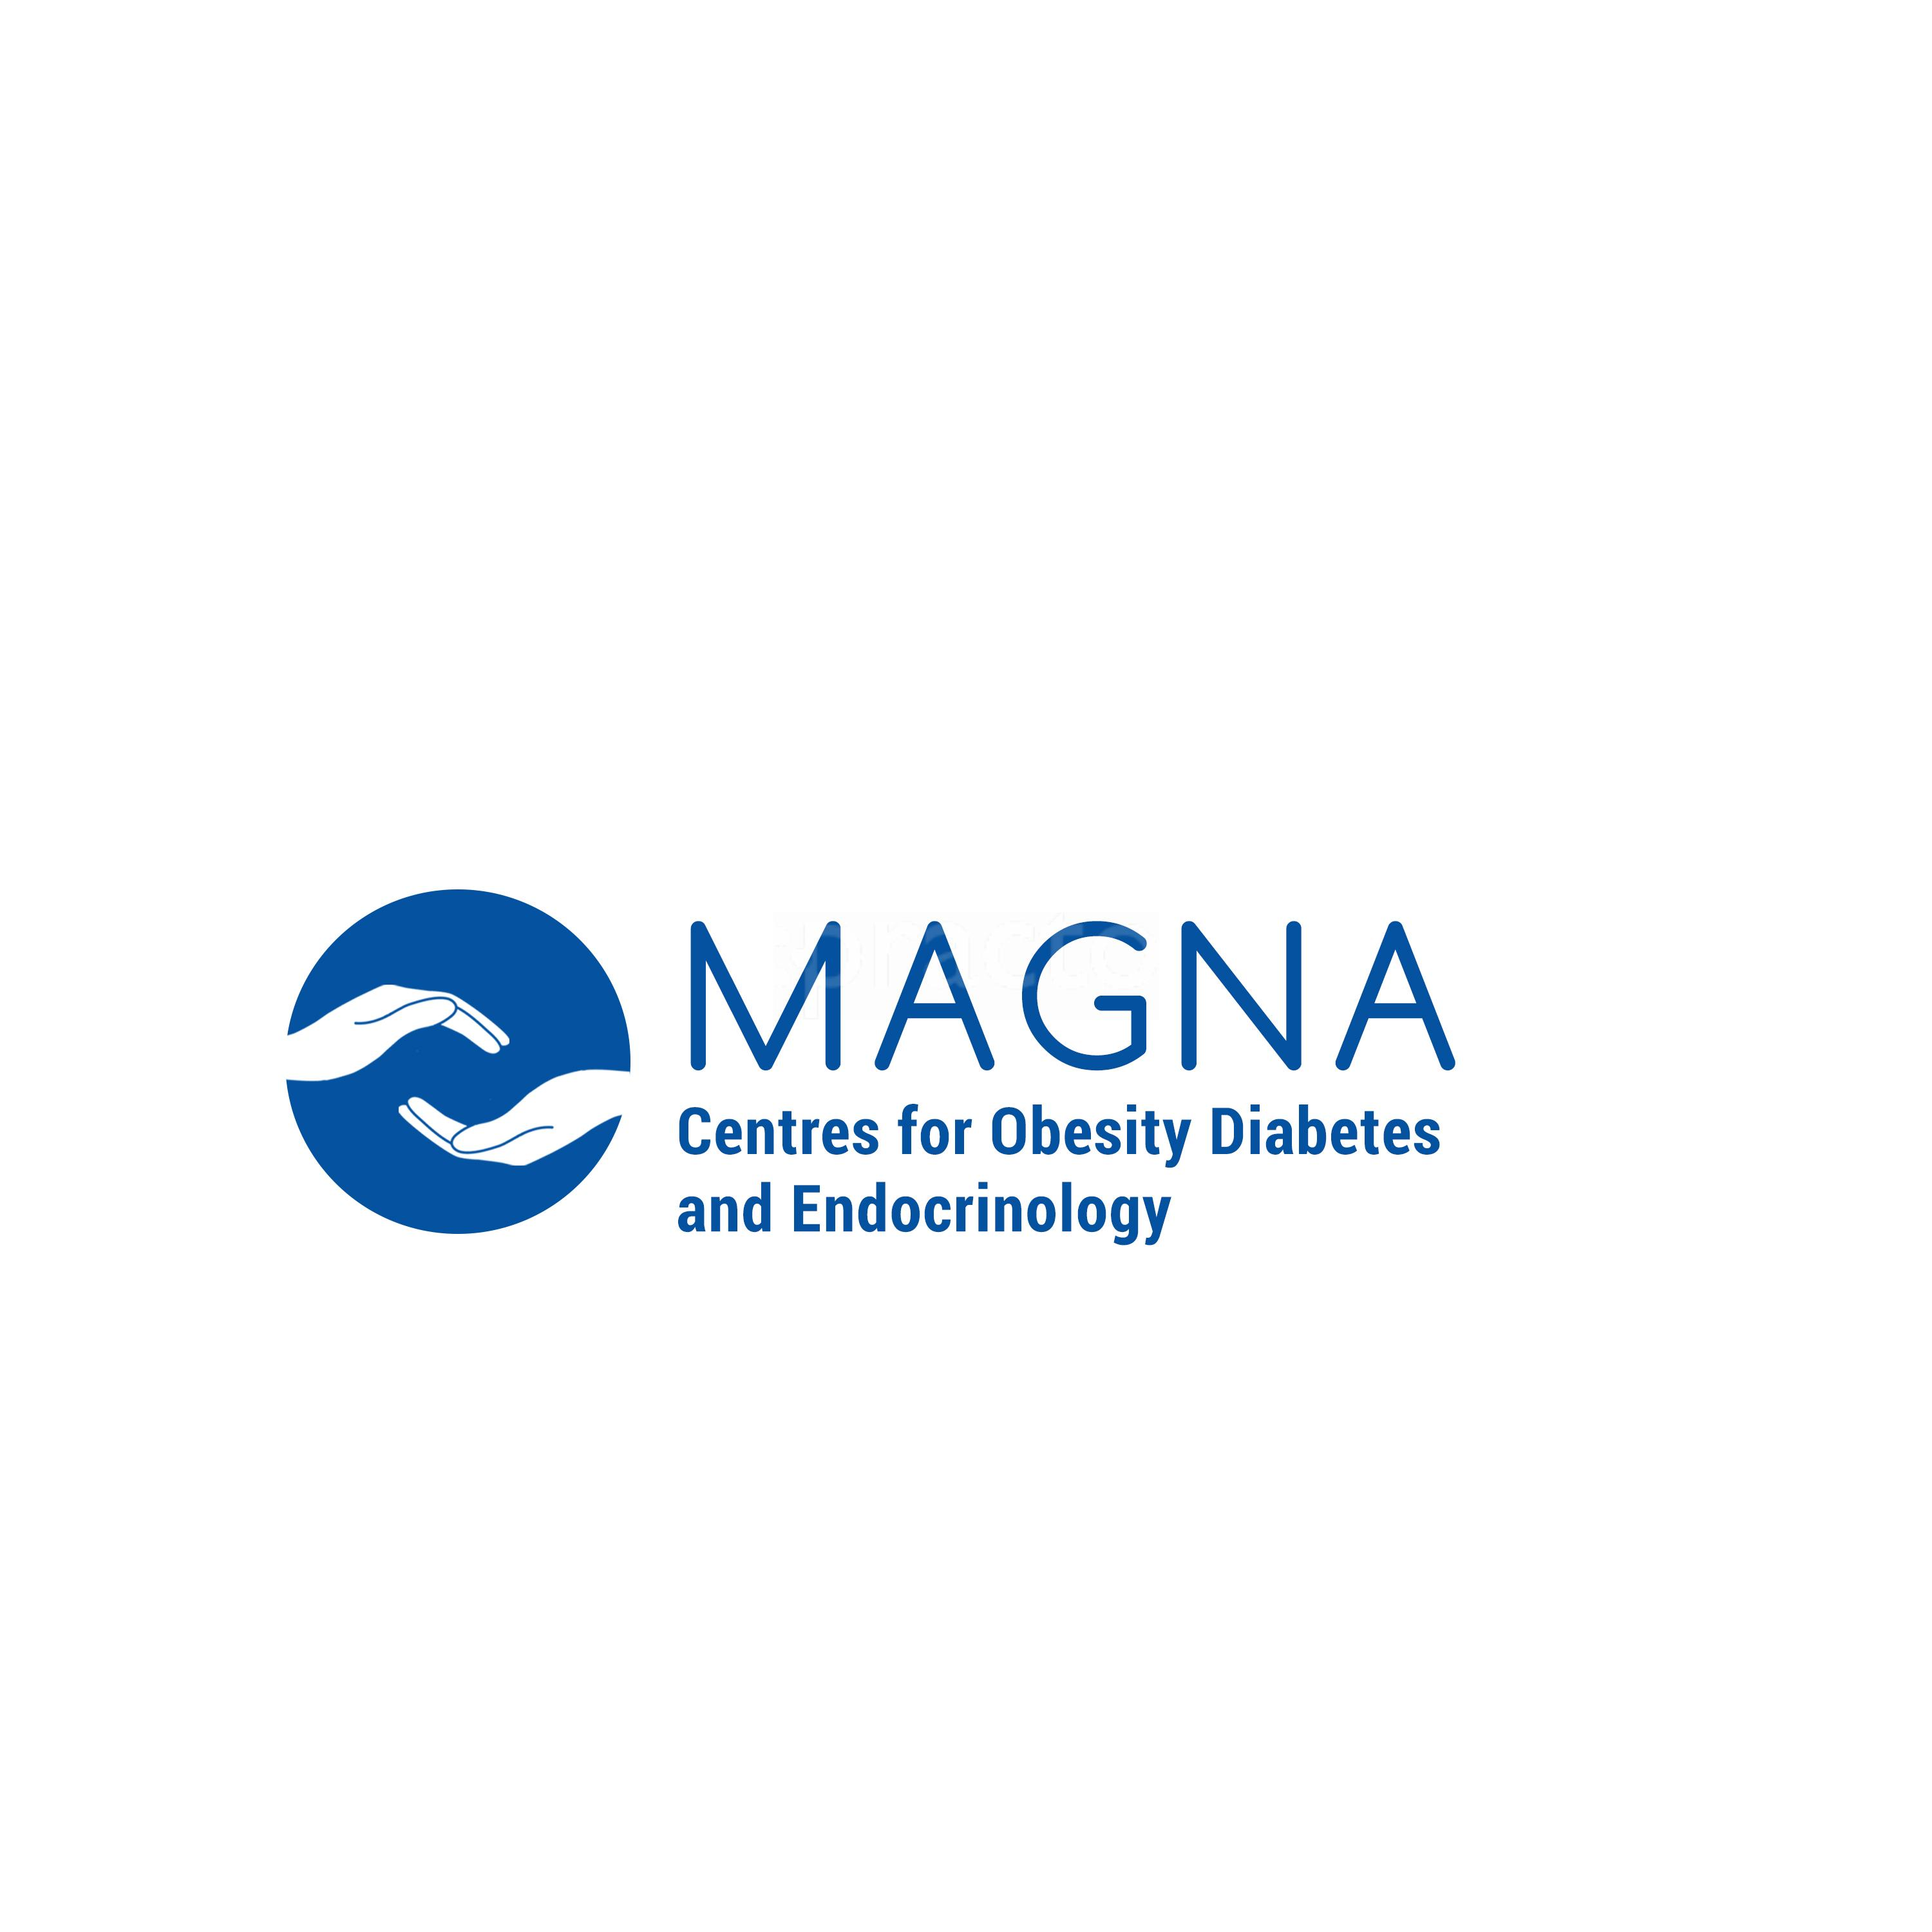 Magna Centres For Obesity, Diabetes & Endocrinology